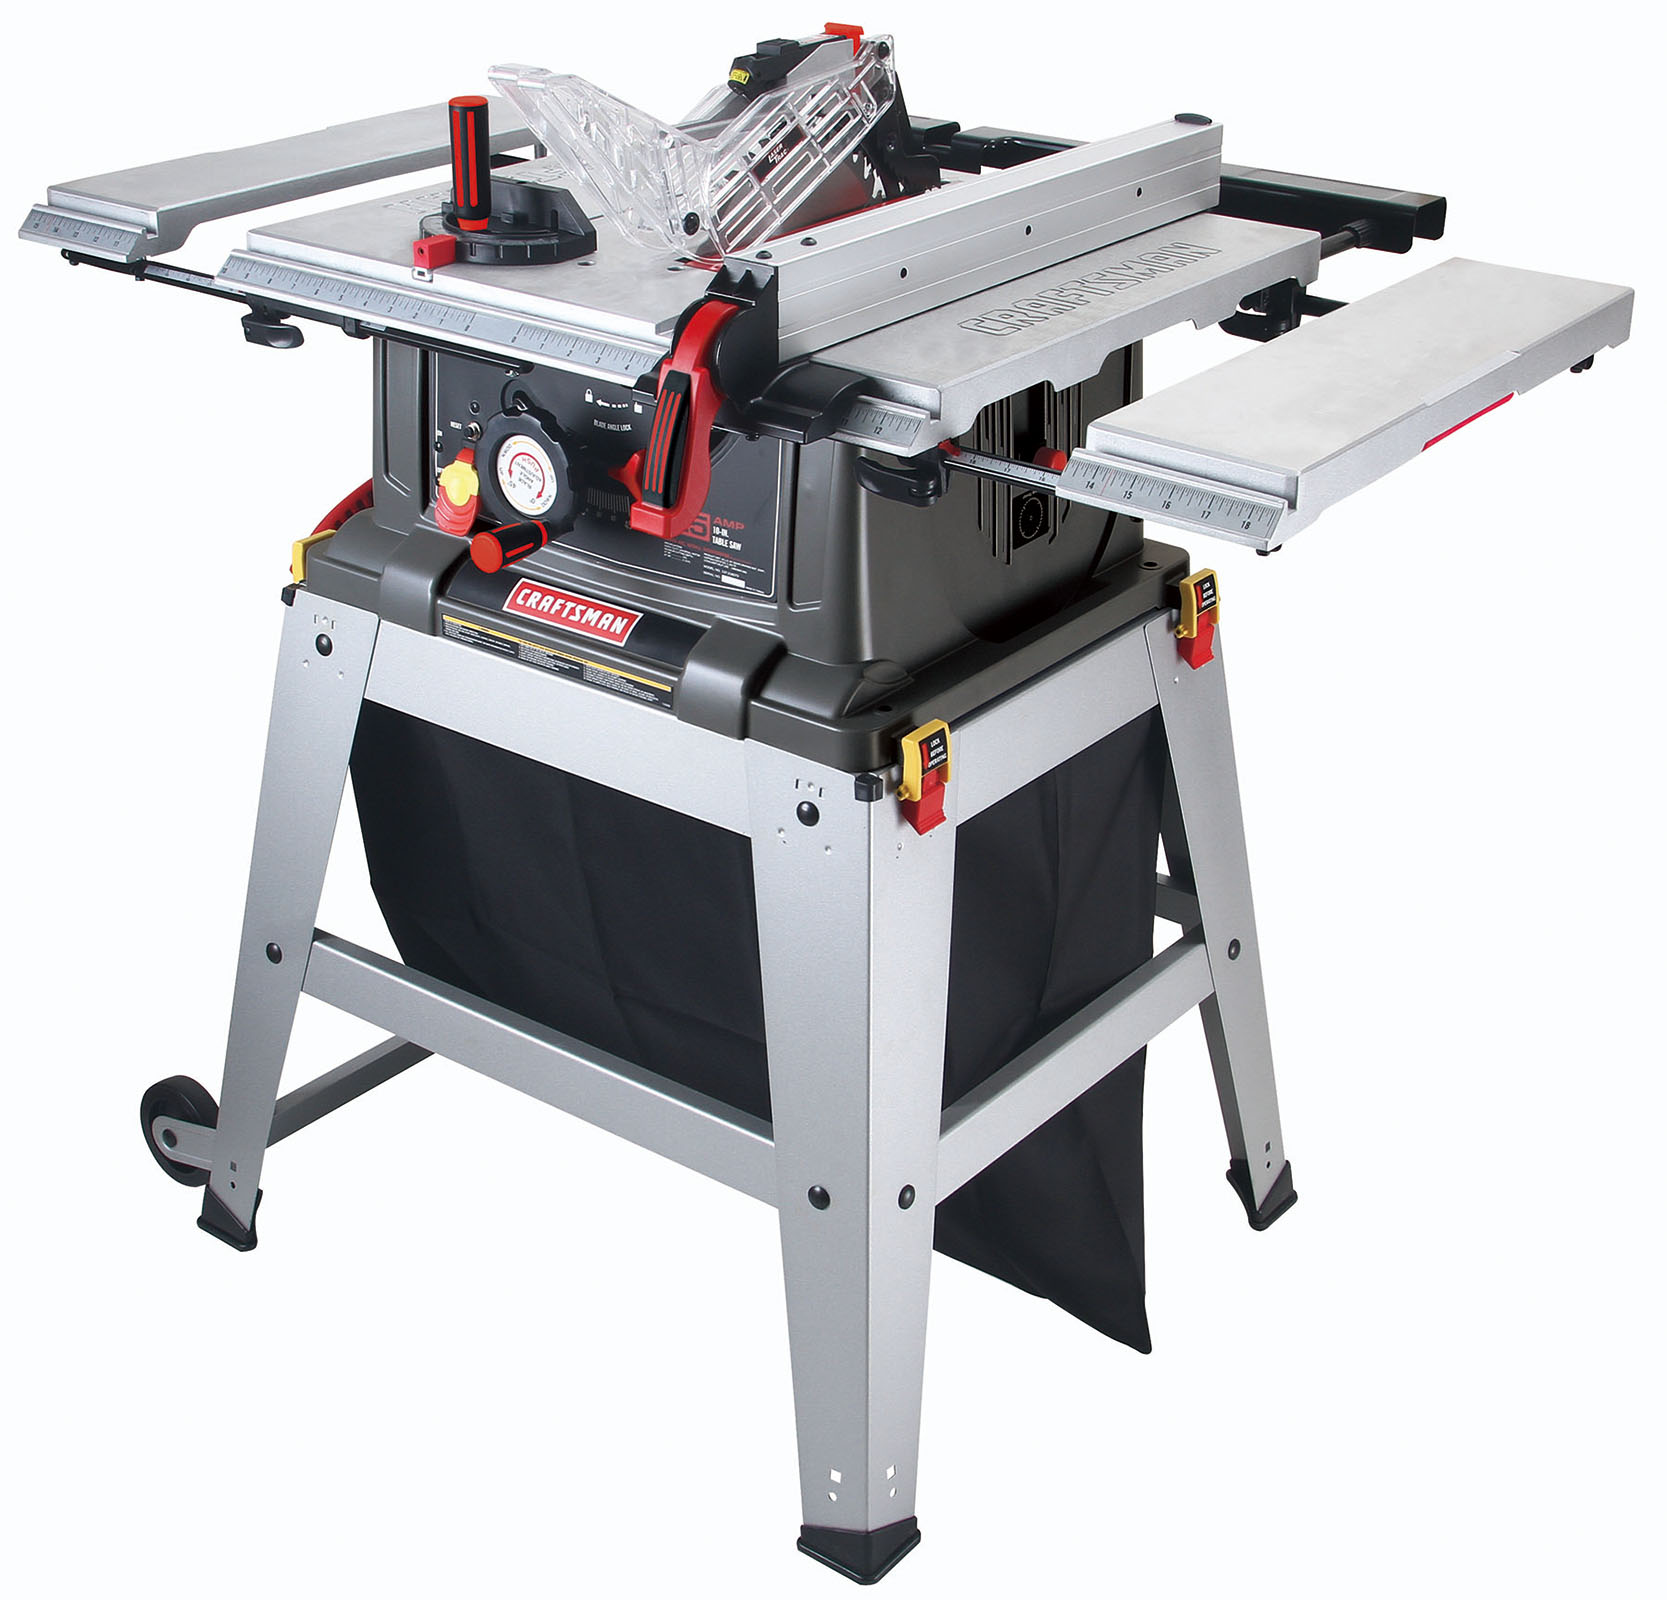 Craftsman 3hp Table Saw Manual